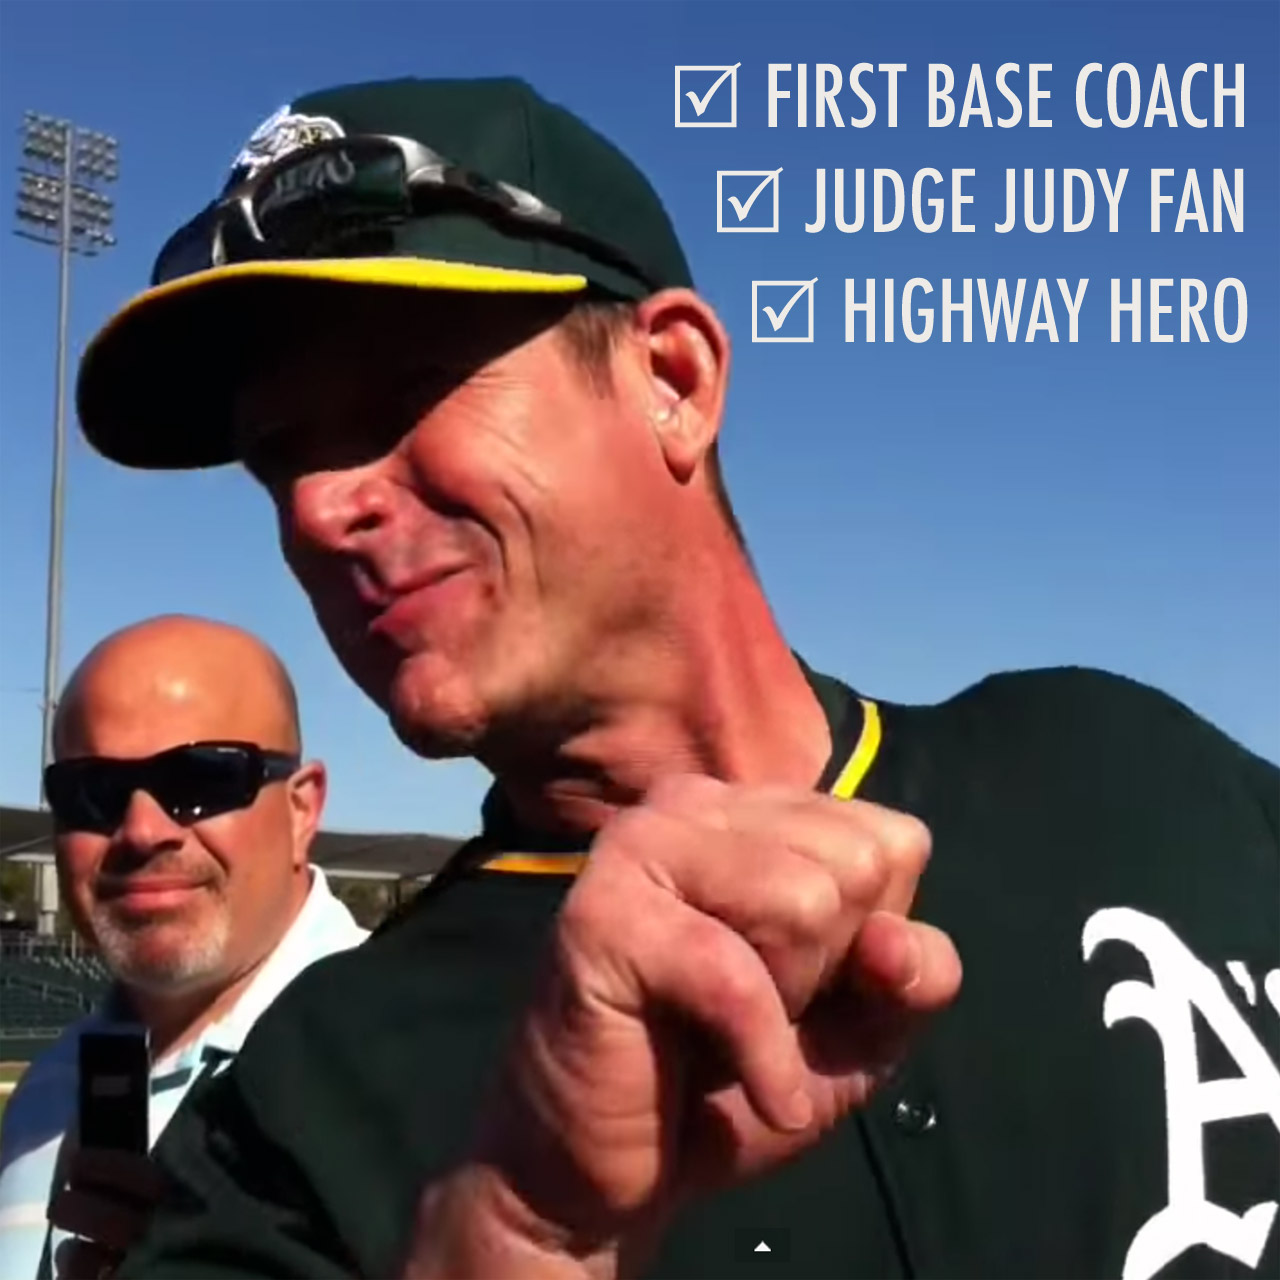 Jim Harbaugh as Oakland Athletics first base coach